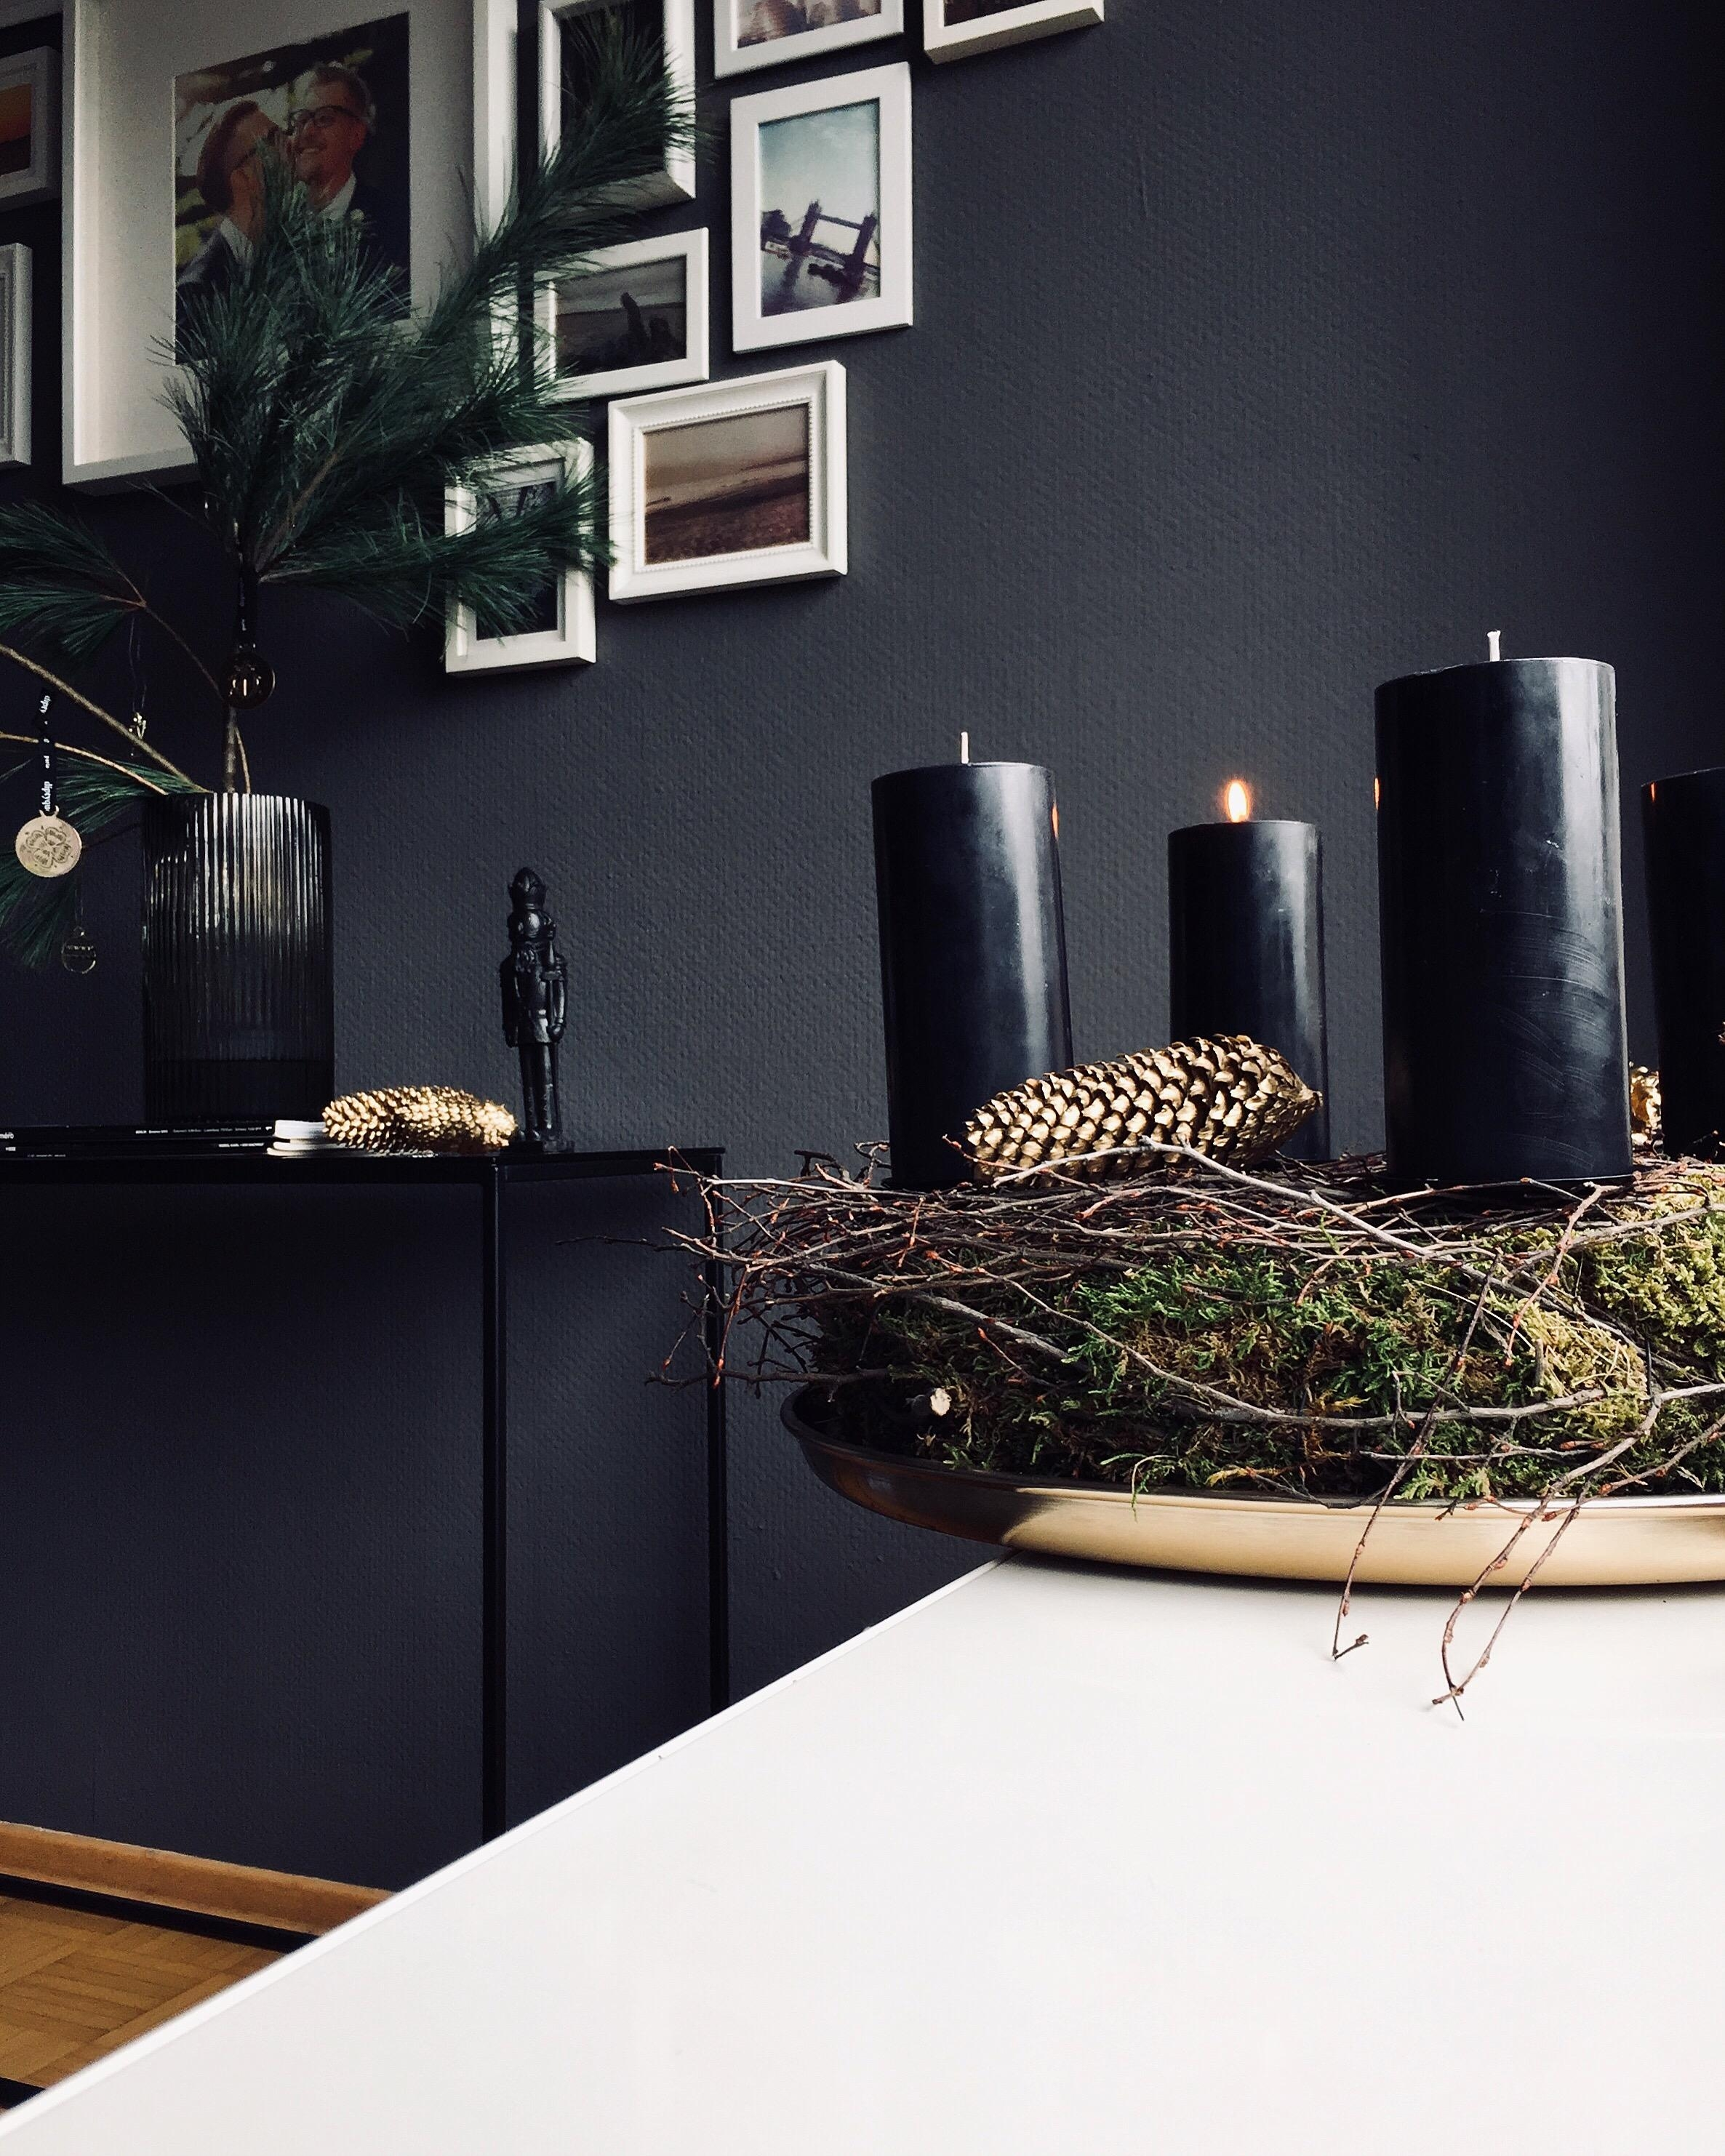 #adventskranz#weekend#diykranz#wall#xmas#livingroom#weekend#sxhwarzgold#weihnachten2019